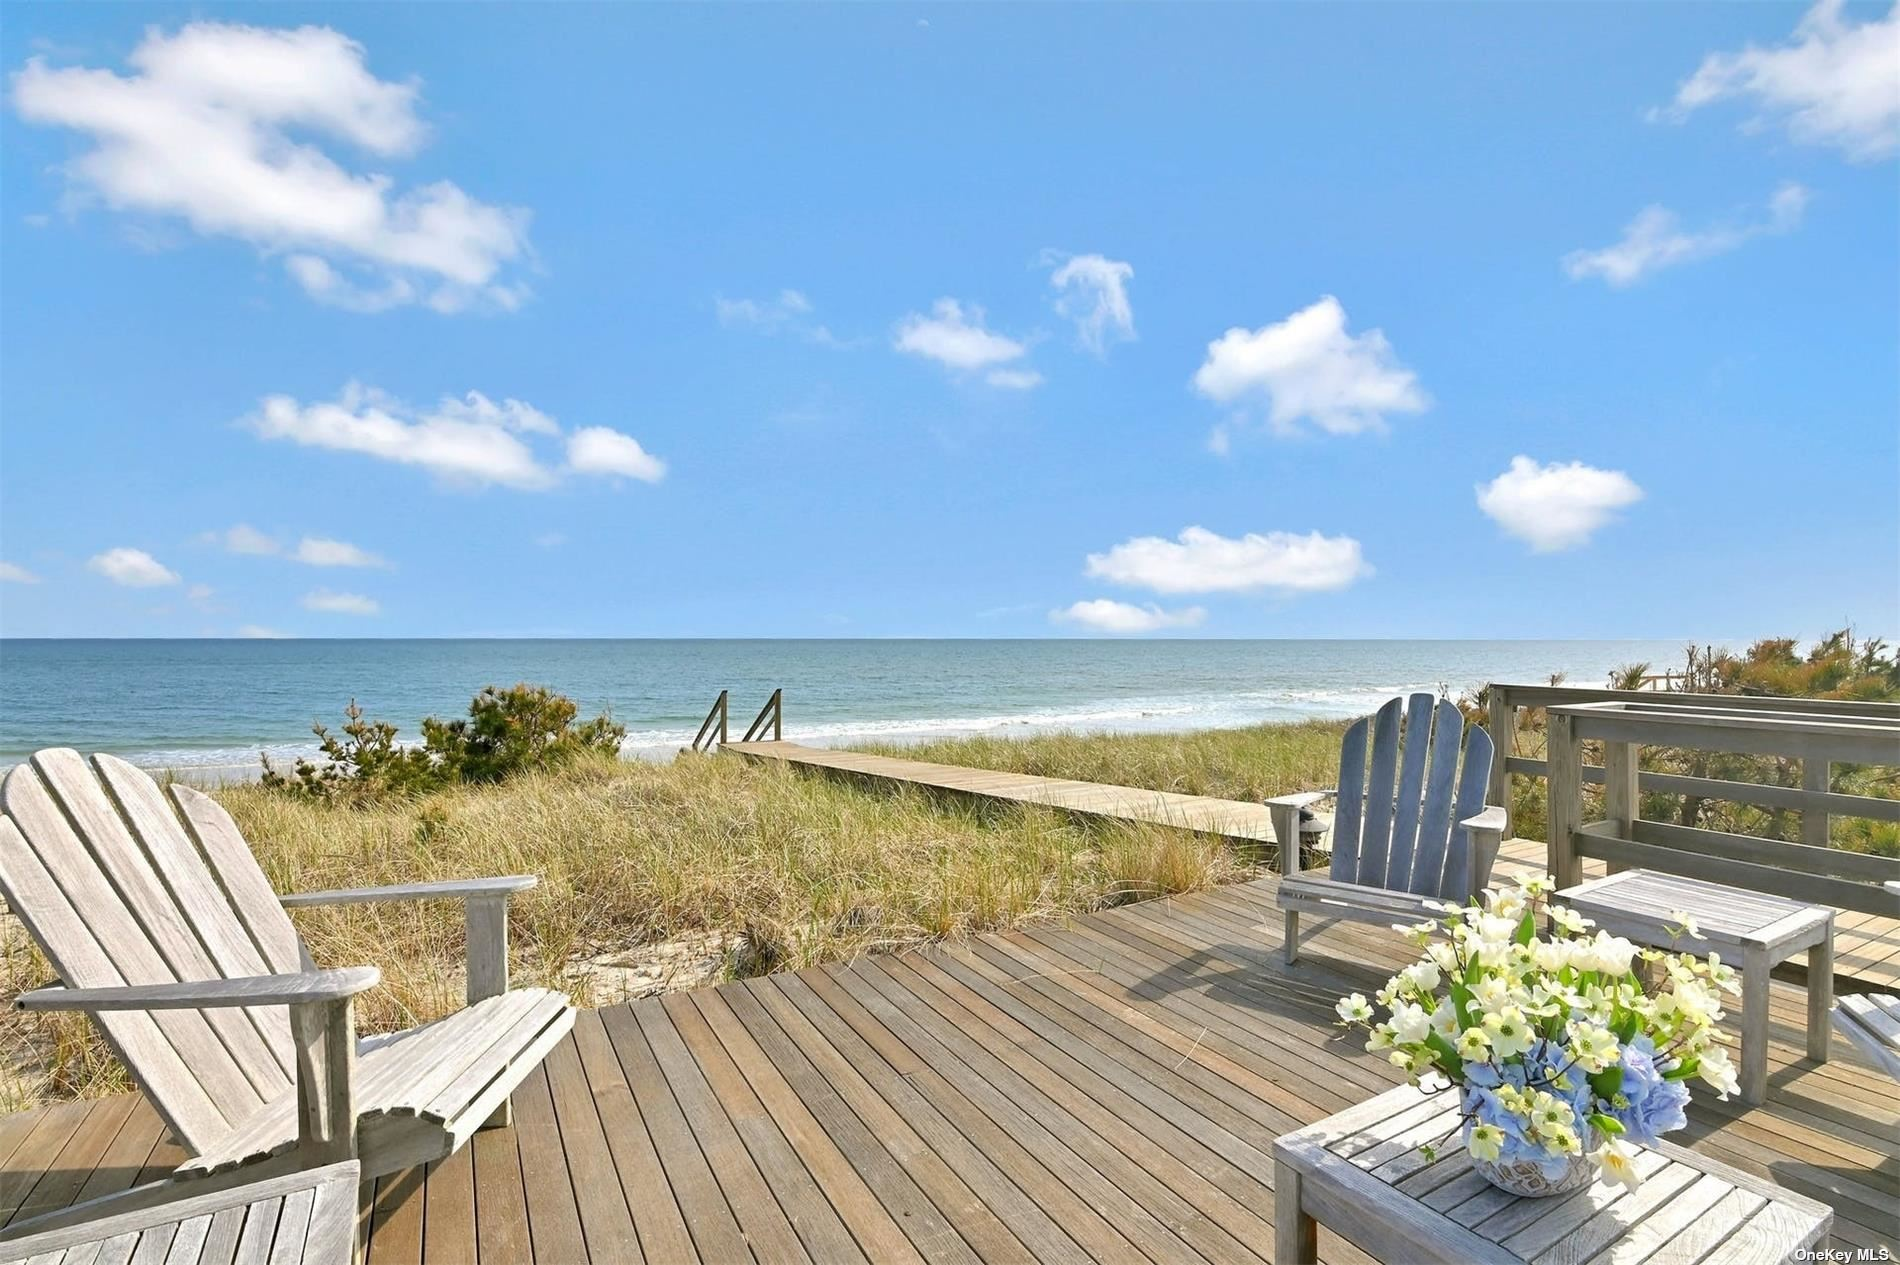 Revel in life and make amazing memories in laid back luxury in this oceanfront home in Quogue, one of the most desirable areas of the world famous Hamptons.  This beautifully designed home offers all the amenities one could want. Seven beautiful bedrooms, six with their own baths, an awesome master bedroom and bath, two half baths, a living room, formal dining room, spectacular kitchen, a family room, billiard room, elevator, fireplaces everywhere, an enormous swimming pool area with heated gunite swimming pool and decks, 3 car garage, whole house backup generator, gorgeous landscaping and your own access to the pristine beach.  And more.  Only one word to describe this offering:  FABULOUS!